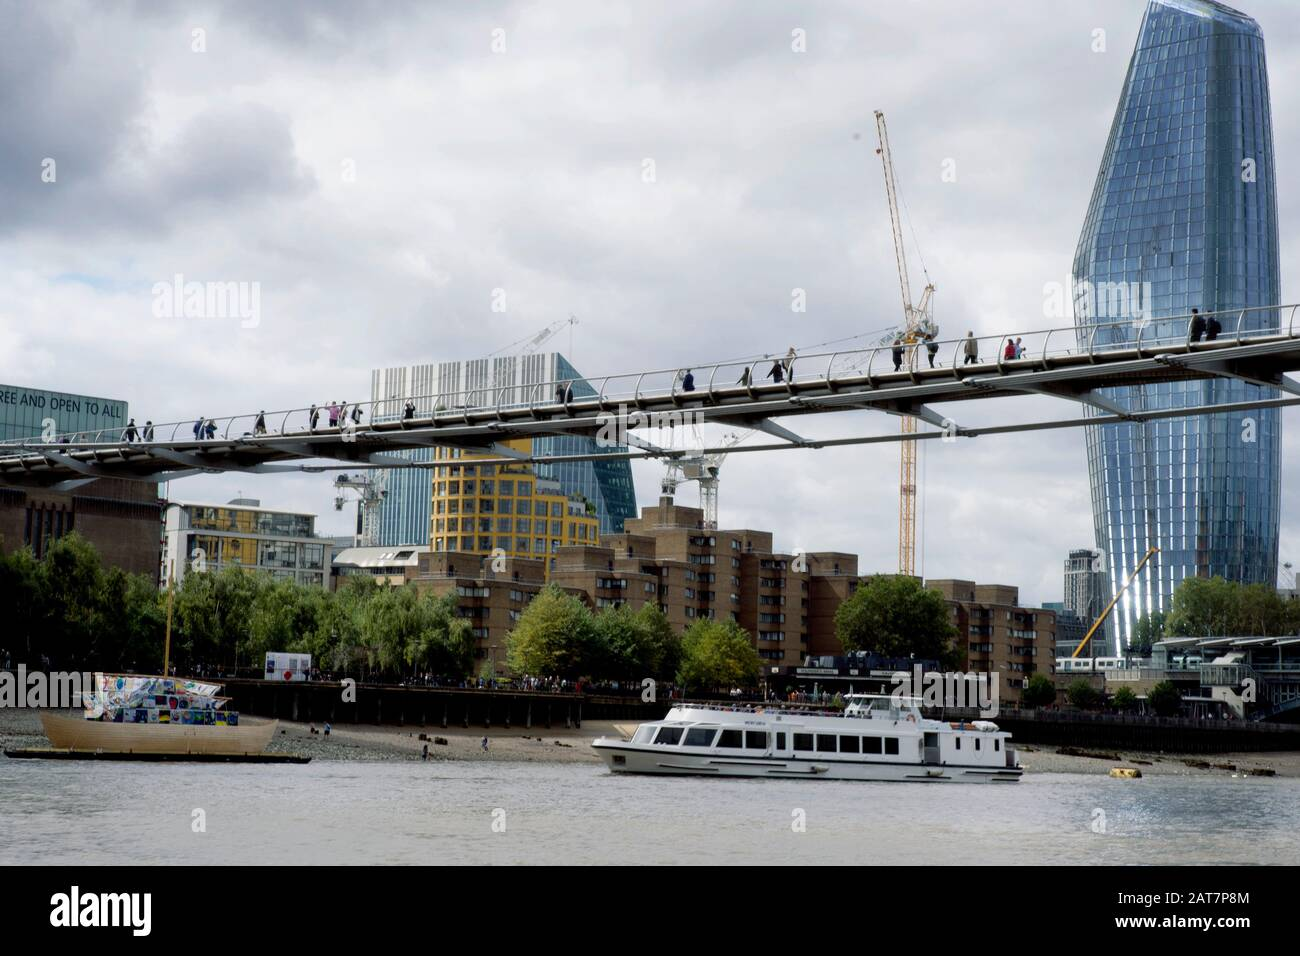 A view of  the river Thames foreshore, with the Walkie Talkie building in the background, as a tourist cruise boat passes under the Millennium bridge. The Thames is a popular place for mudlarking and archaeological finds. Stock Photo